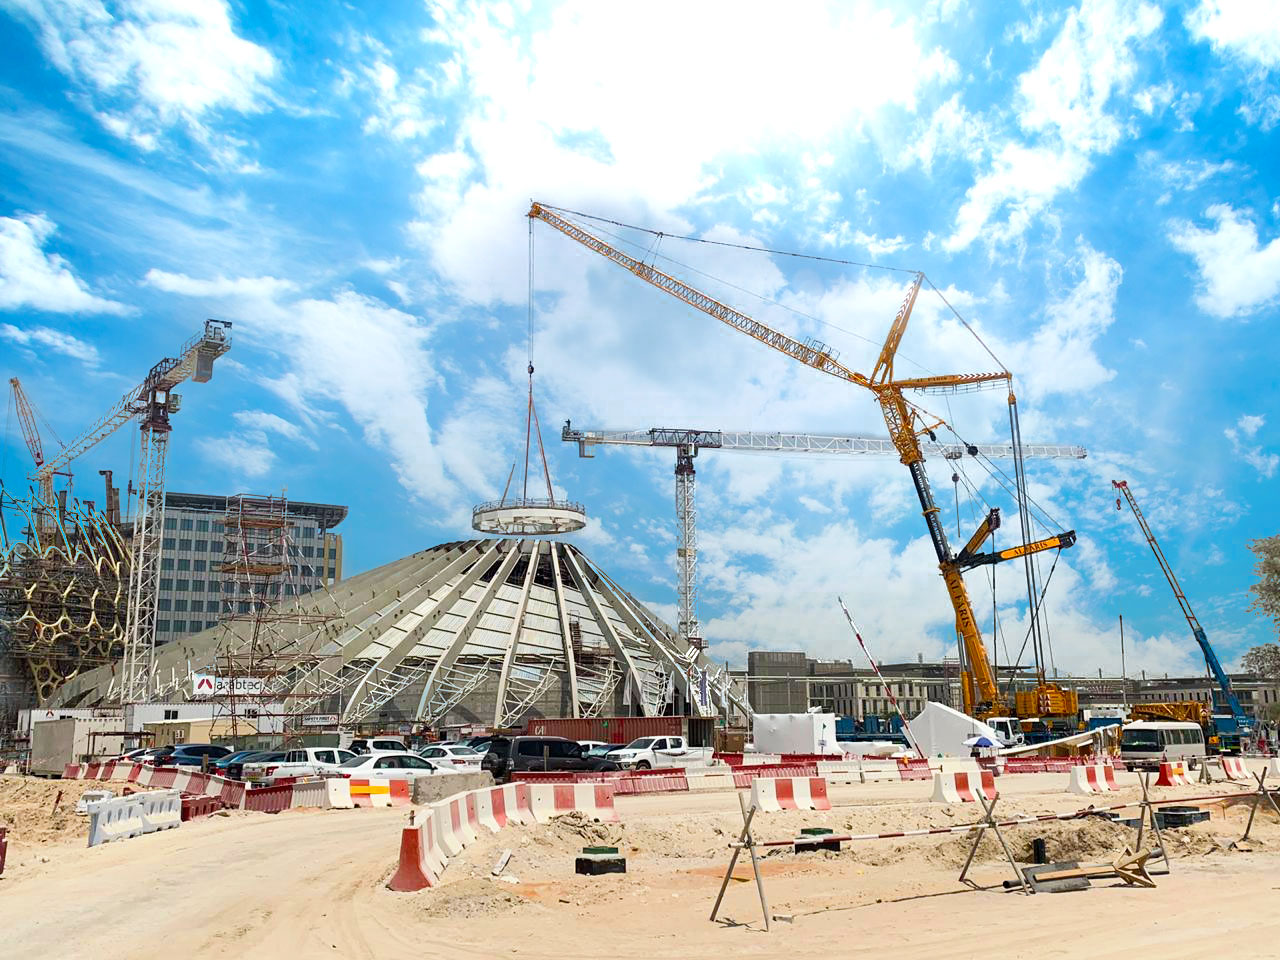 Supporting the EXPO 2020 project with our engineering and heavy lifting expertise!